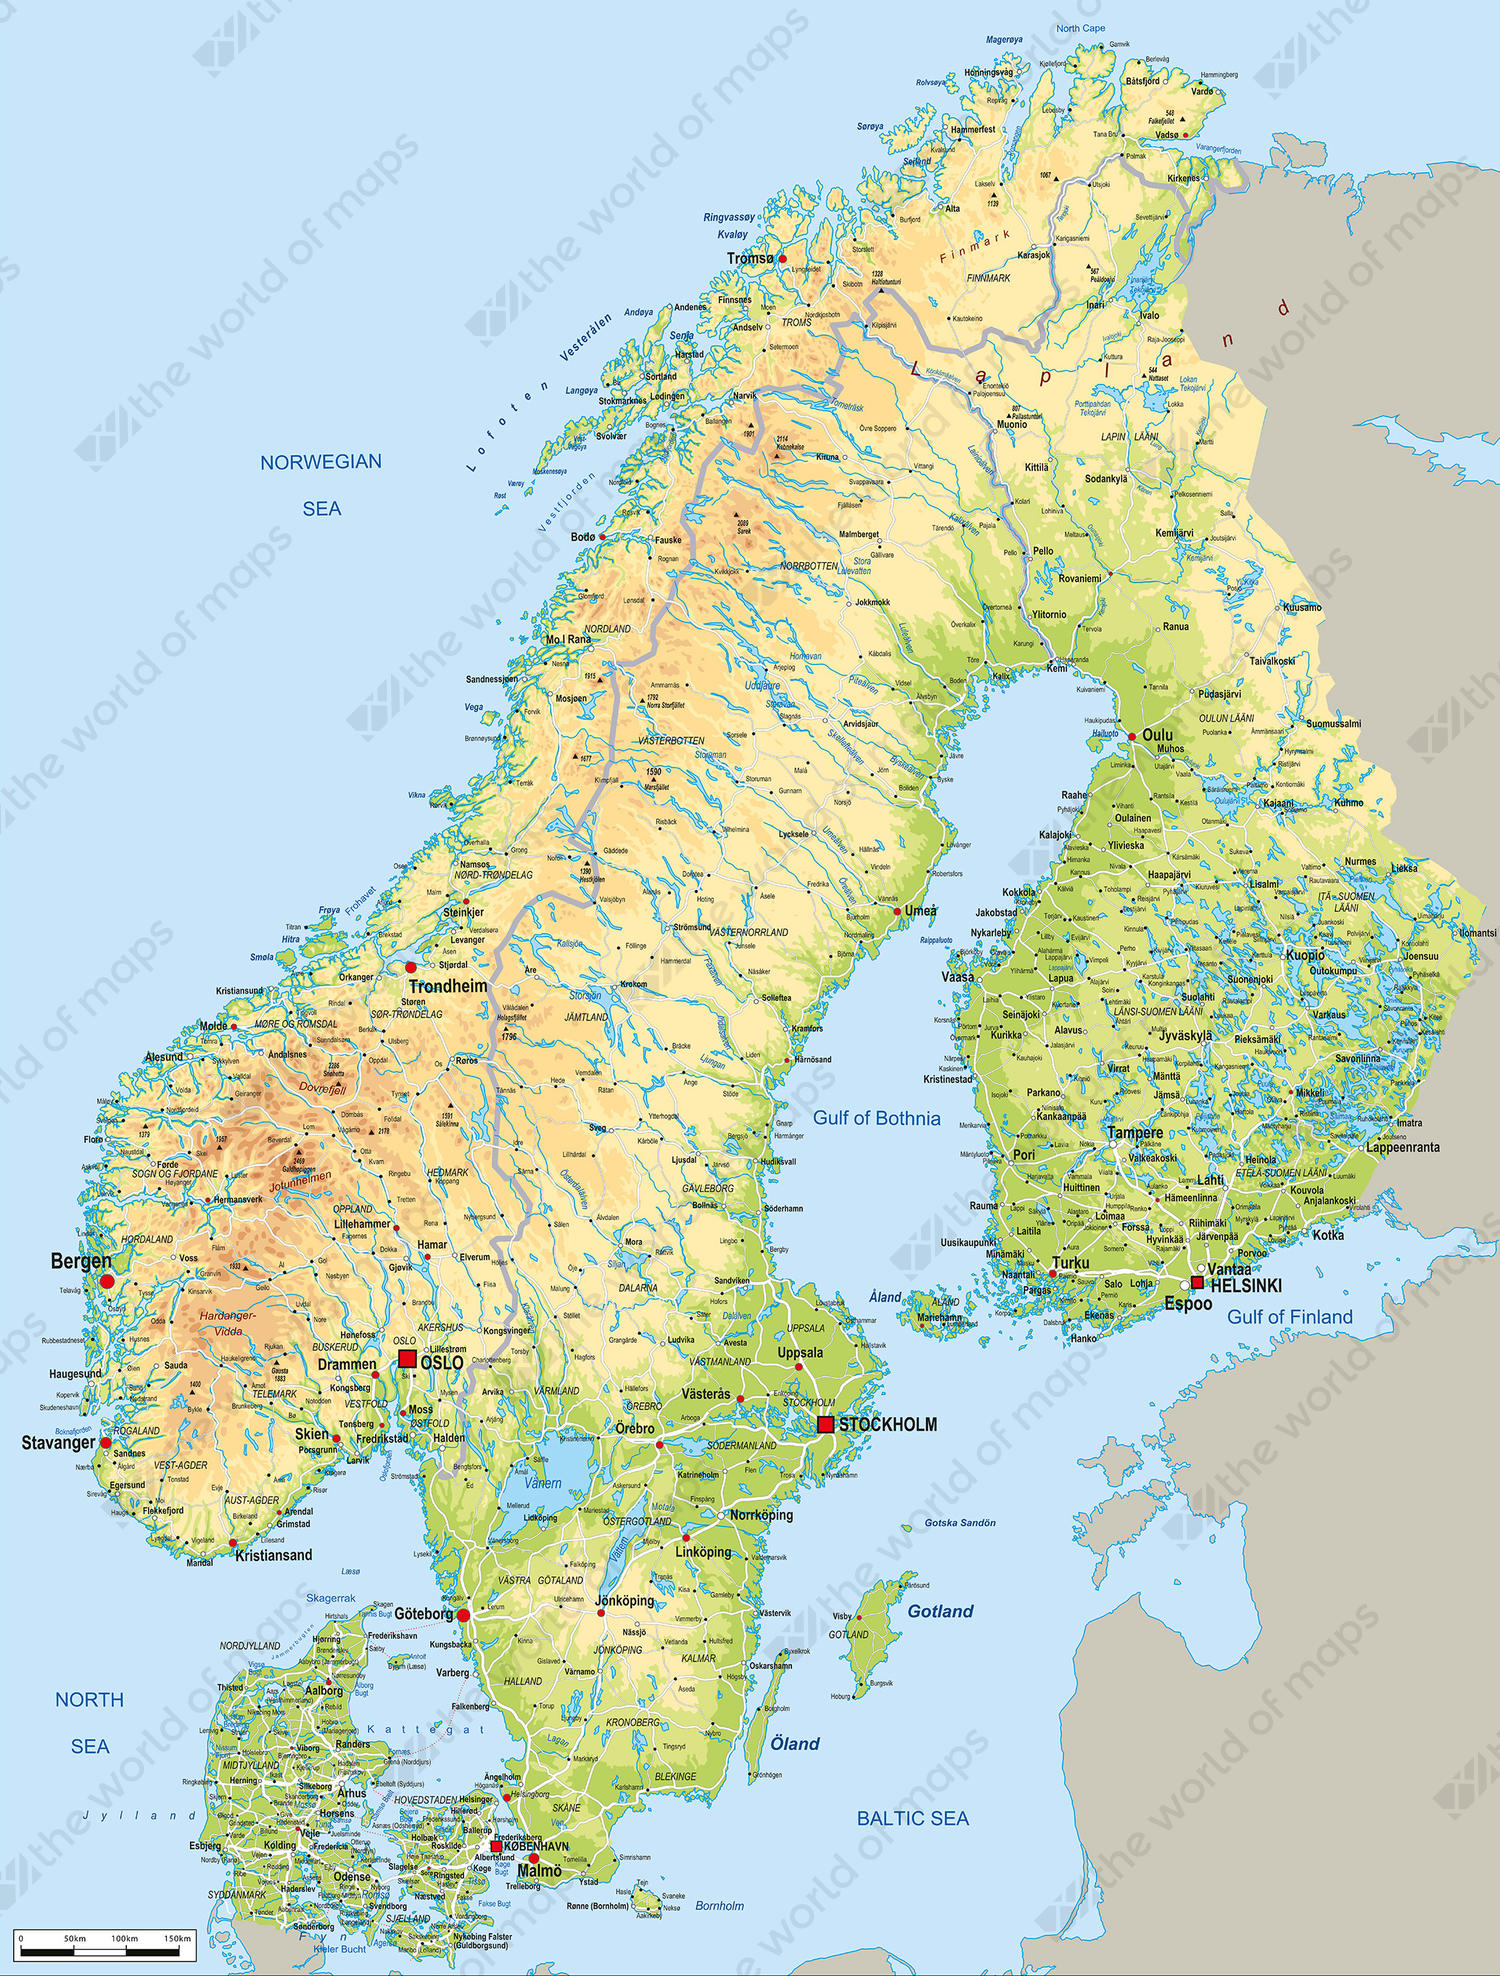 Digital Map Scandinavia Physical 54 The World of Mapscom